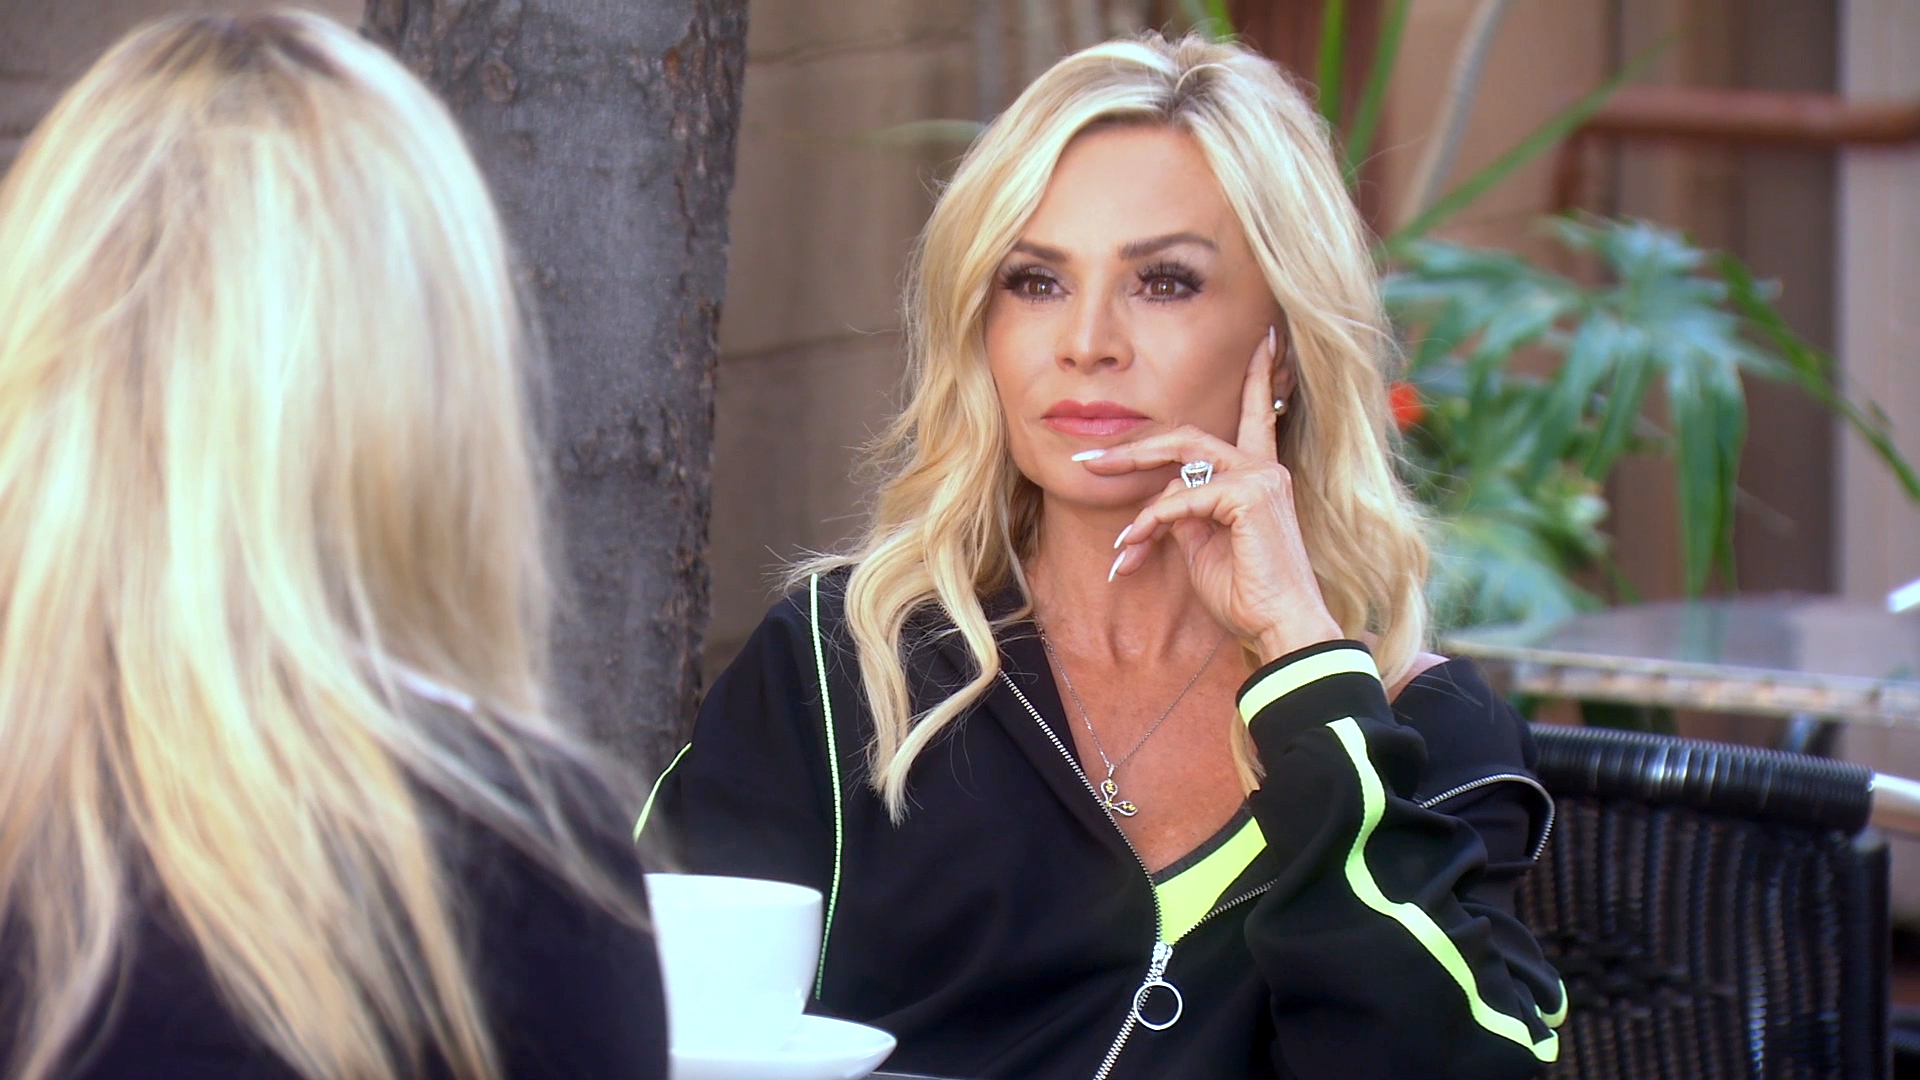 Next on RHOC: Tamra Judge Has Questions for Shannon Beador